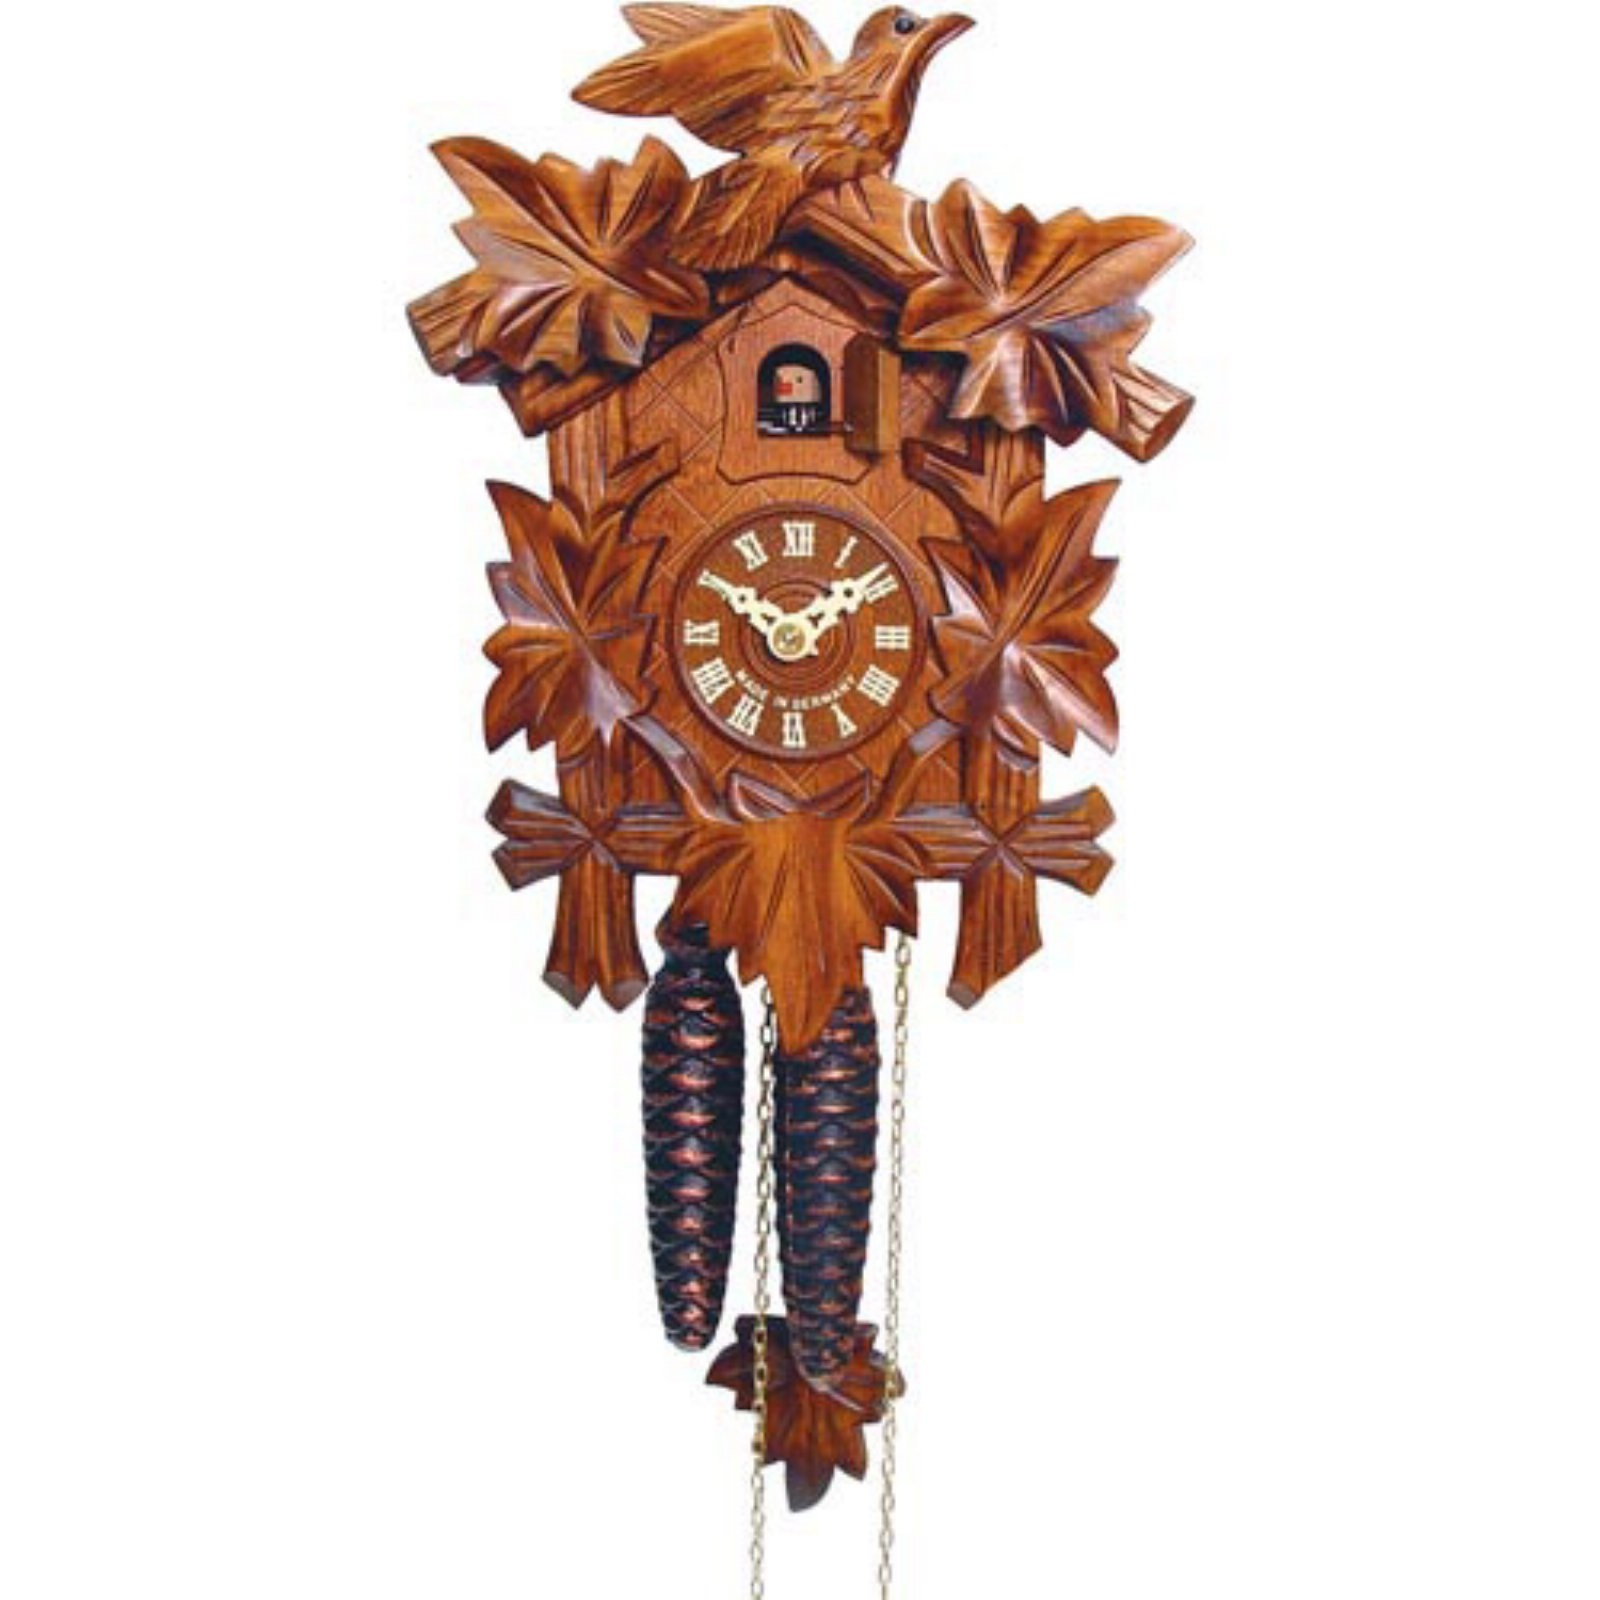 "Alexander Taron Engstler Weight Driven Cuckoo Clock Full Size 9.25""H X 6.75""W X 6""D by Alexander Taron"